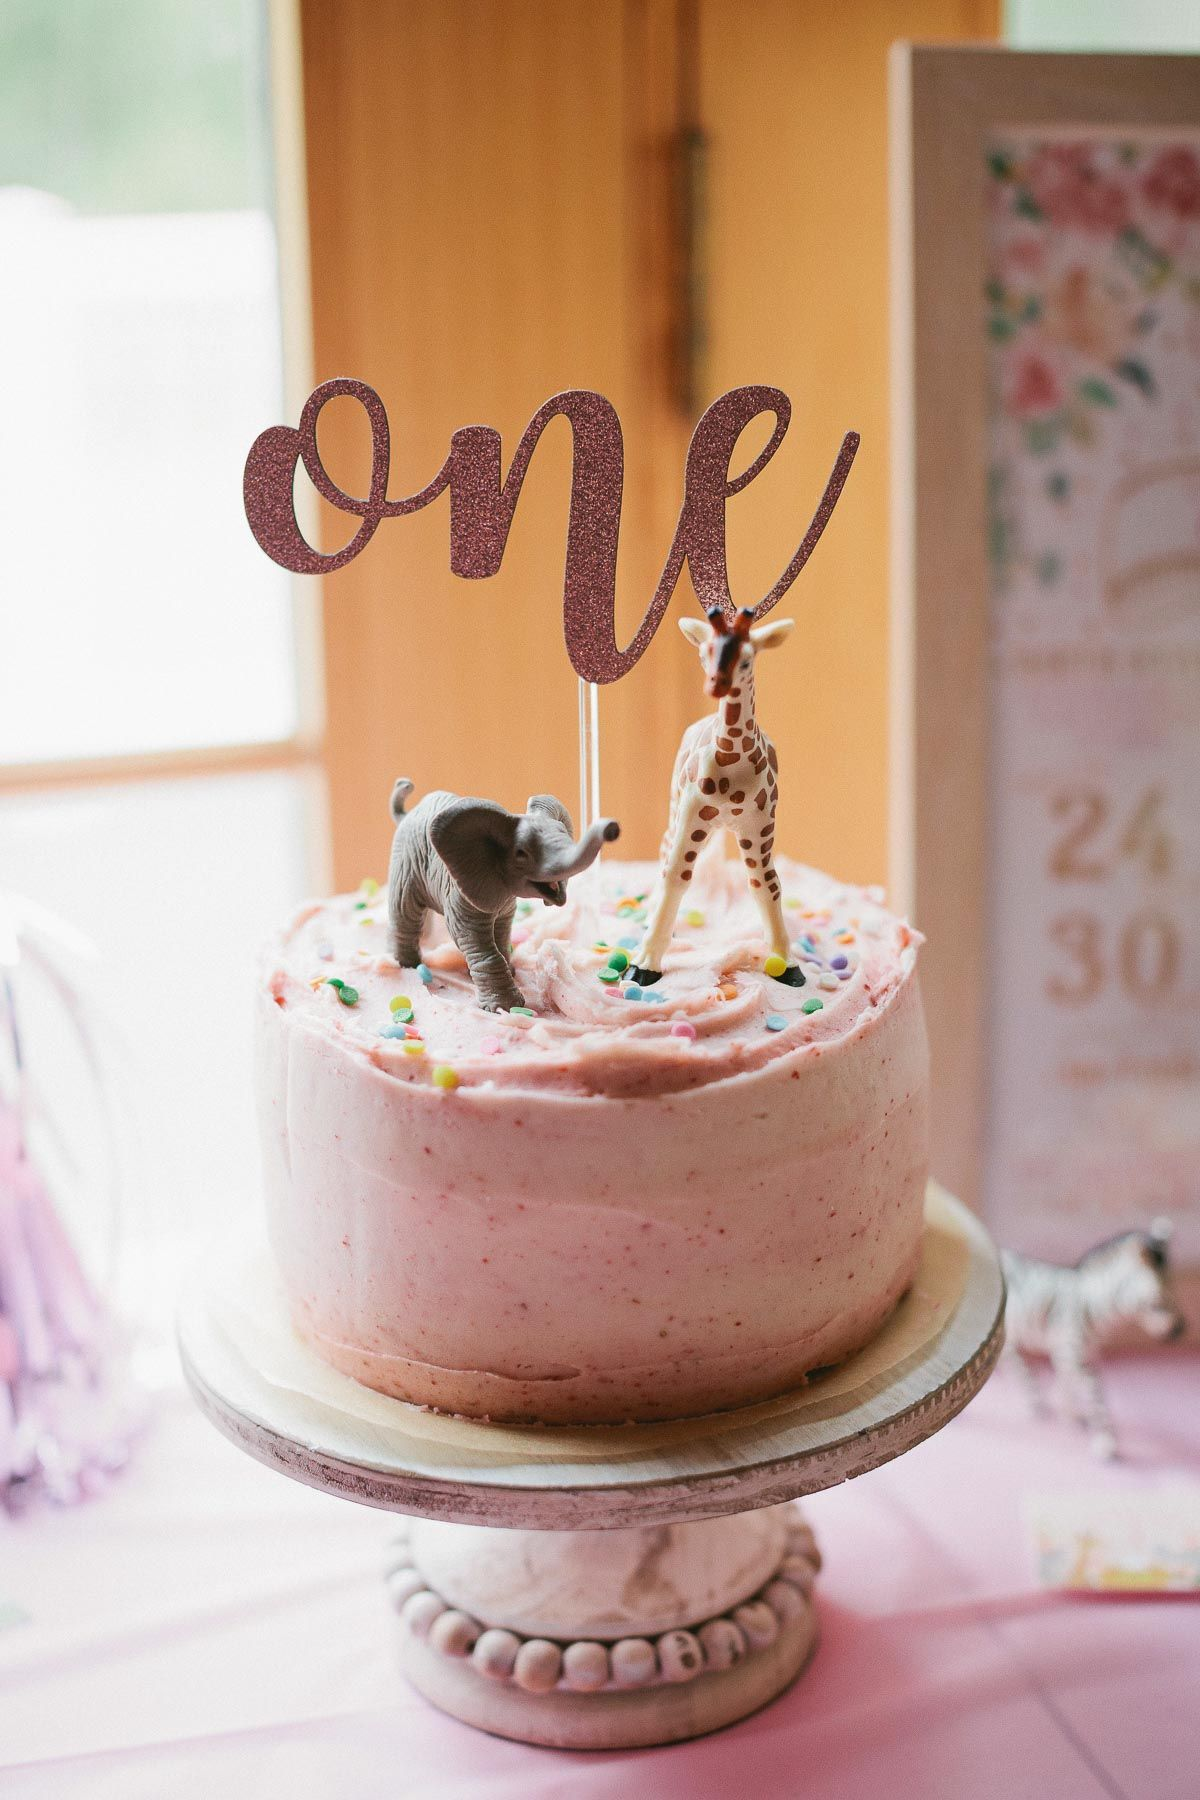 This baby girl's 1st birthday cake recipe is a 6inch